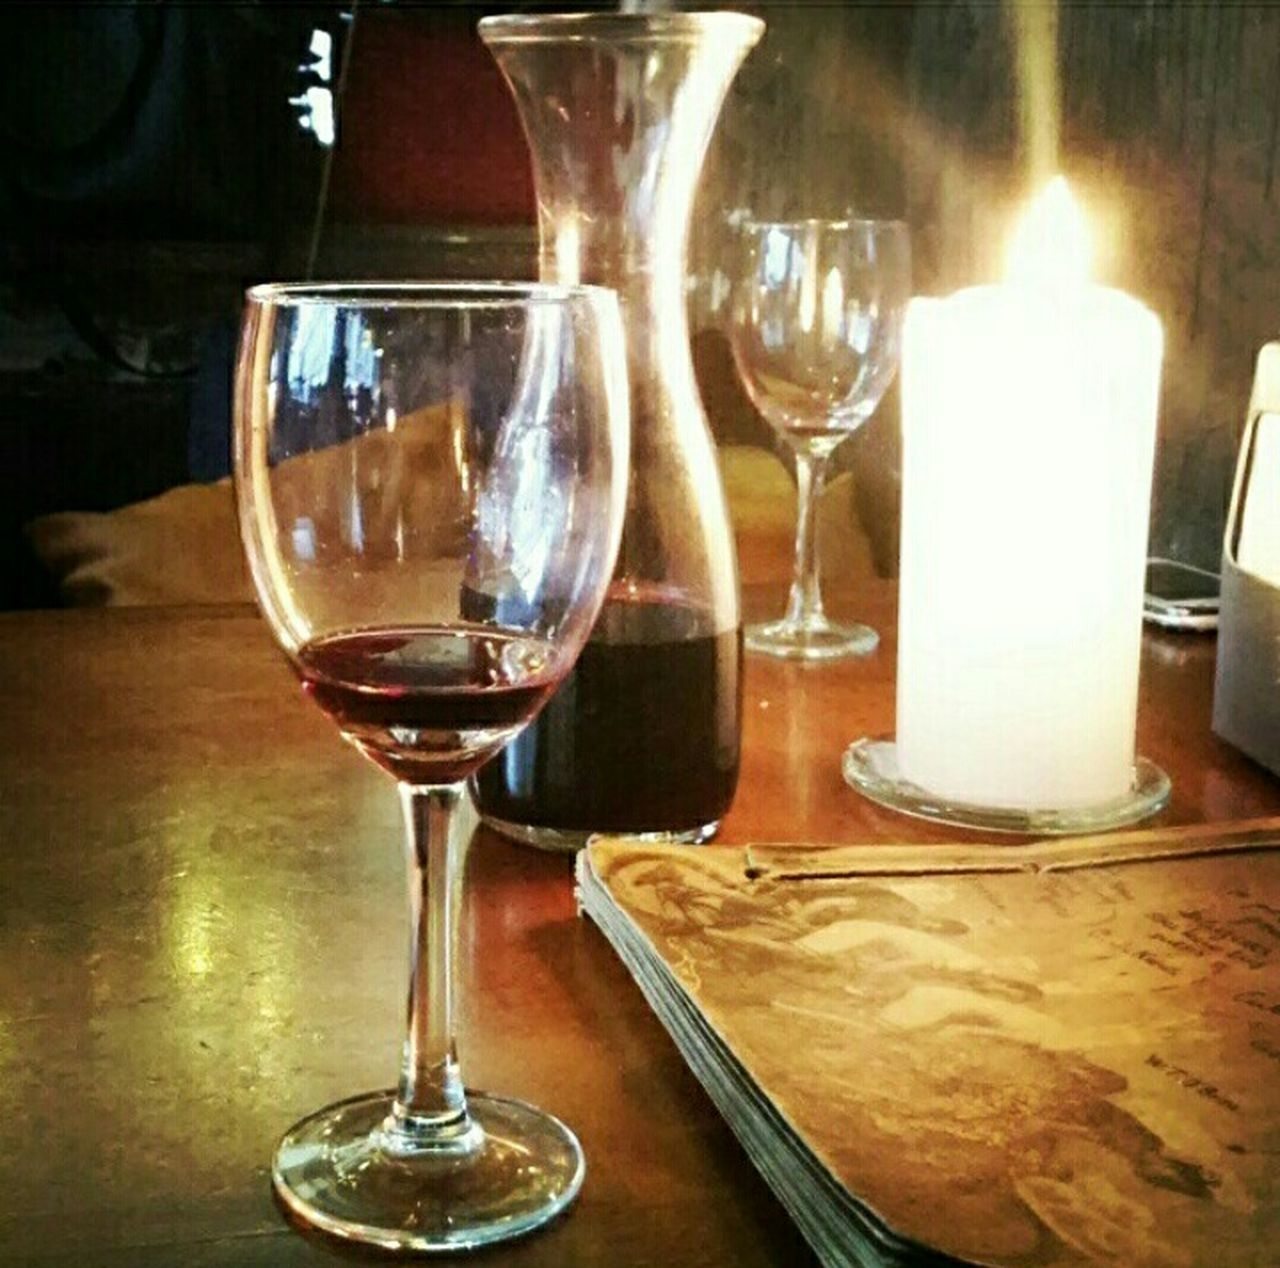 Wine Glasses Wine Time Evening Girlstime  Memories Olddays Missing This Roommates Calmevening Drunk Nights Winelover Redwine Redwinelover Yzybar Kaunas Old Town Barnights Likeapicture Myshot Winephotography Cheers Winelife Candlelight Cozyevening